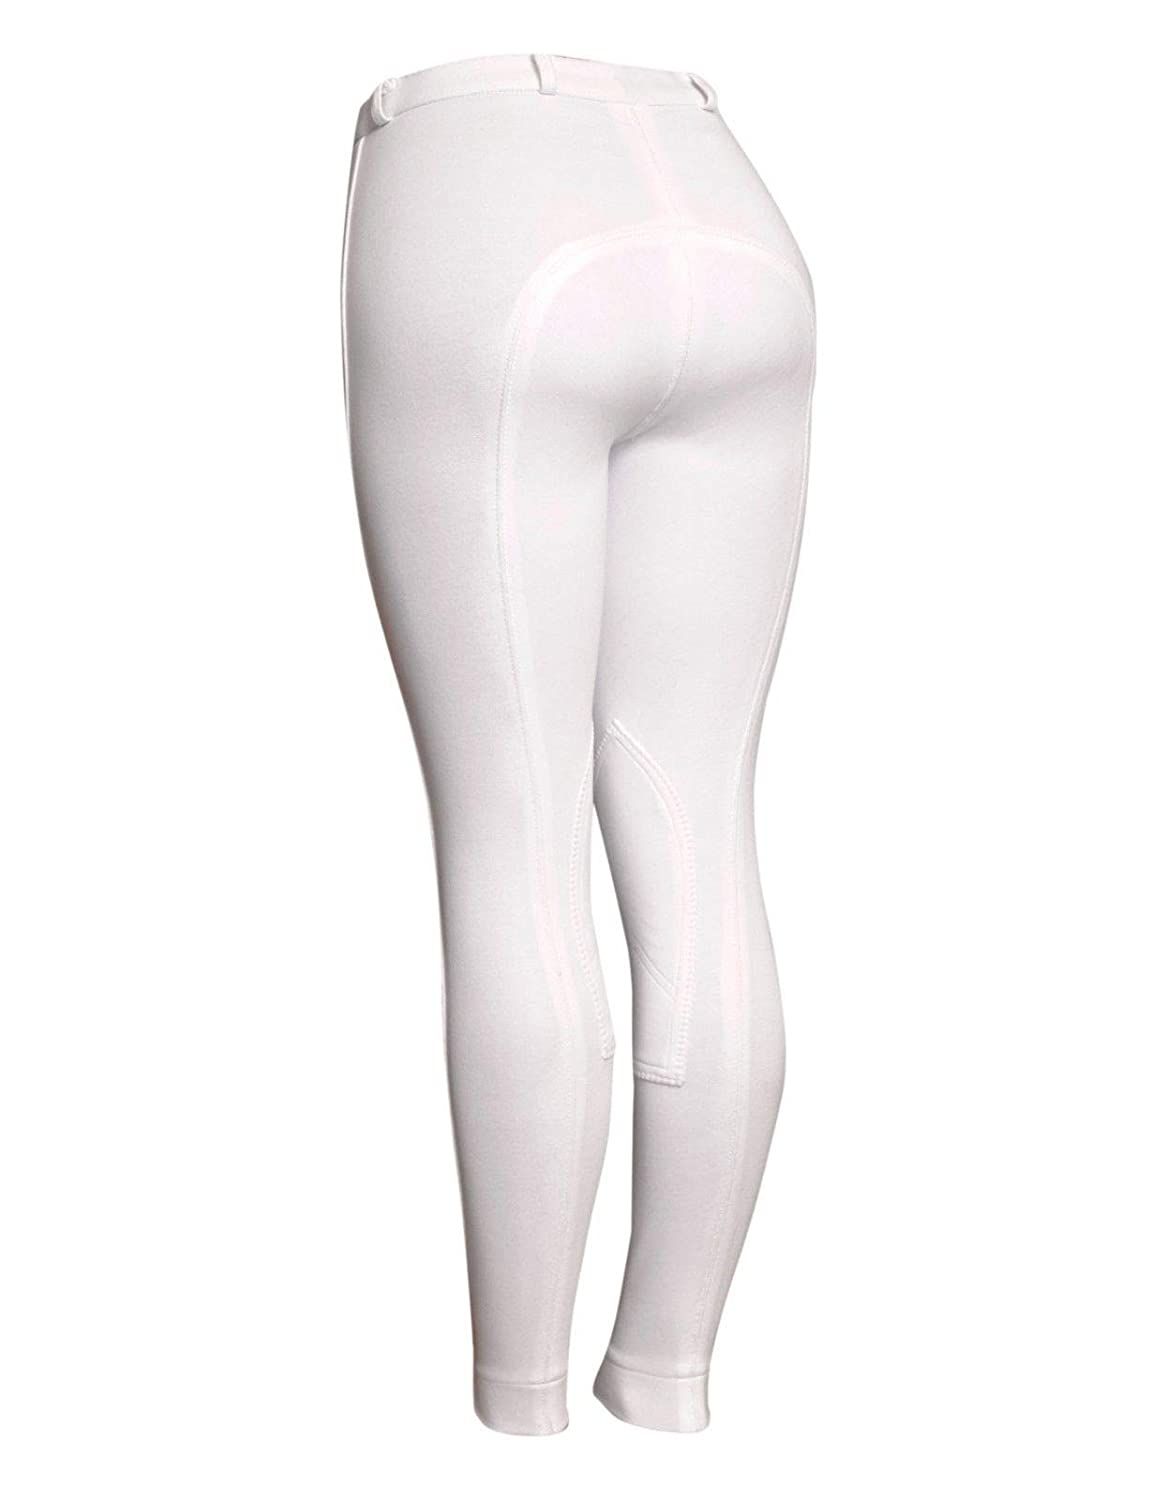 Astile Equestrian Childrens//Kids Horse Riding Jodhpurs//Breeches from 18 to 28 Waist Soft Stretchy